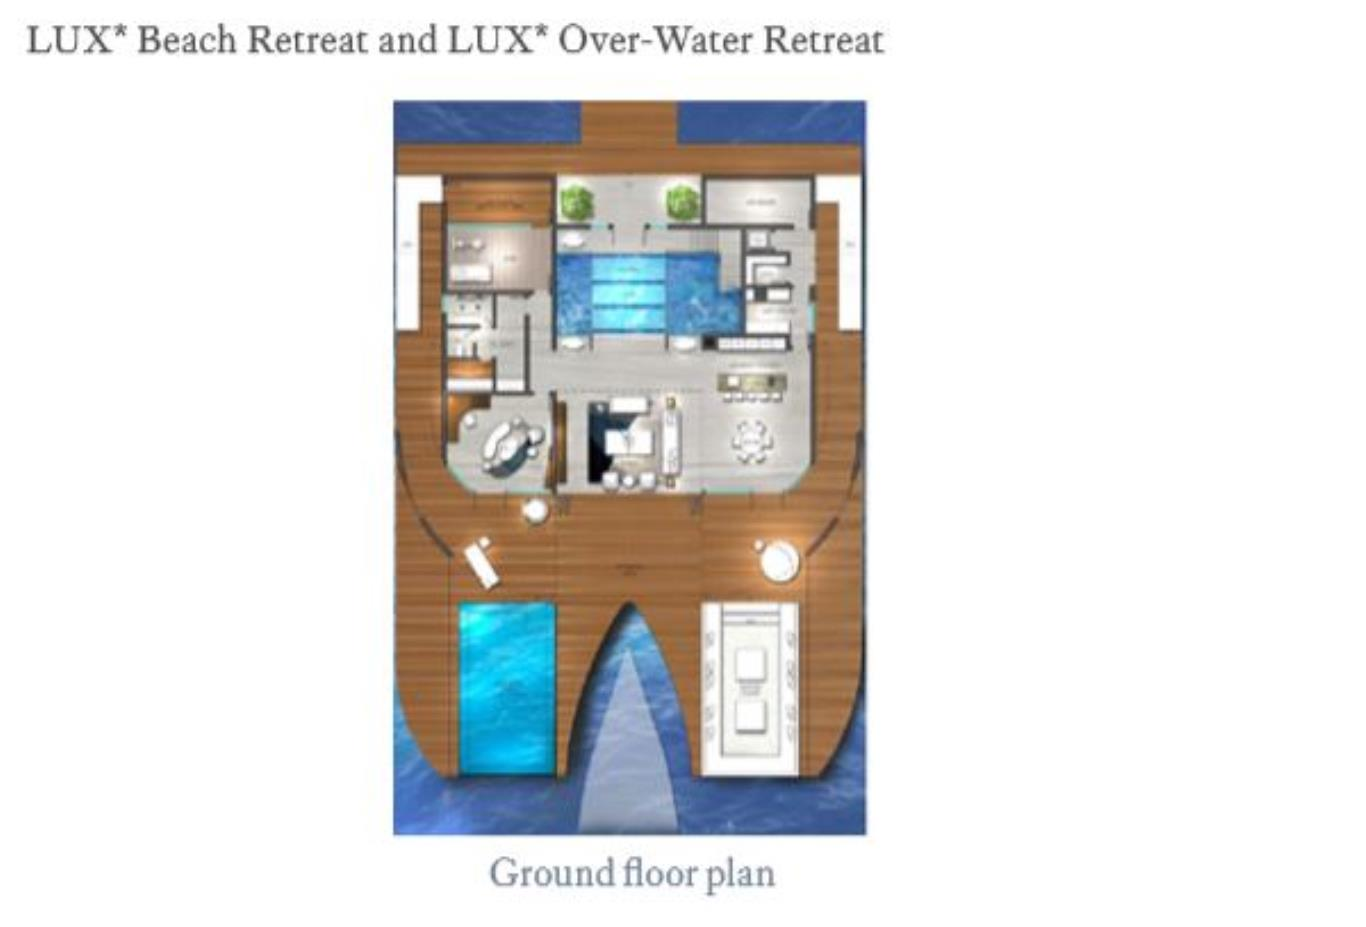 Floorplan Beach Retreat and Overwater Retreat